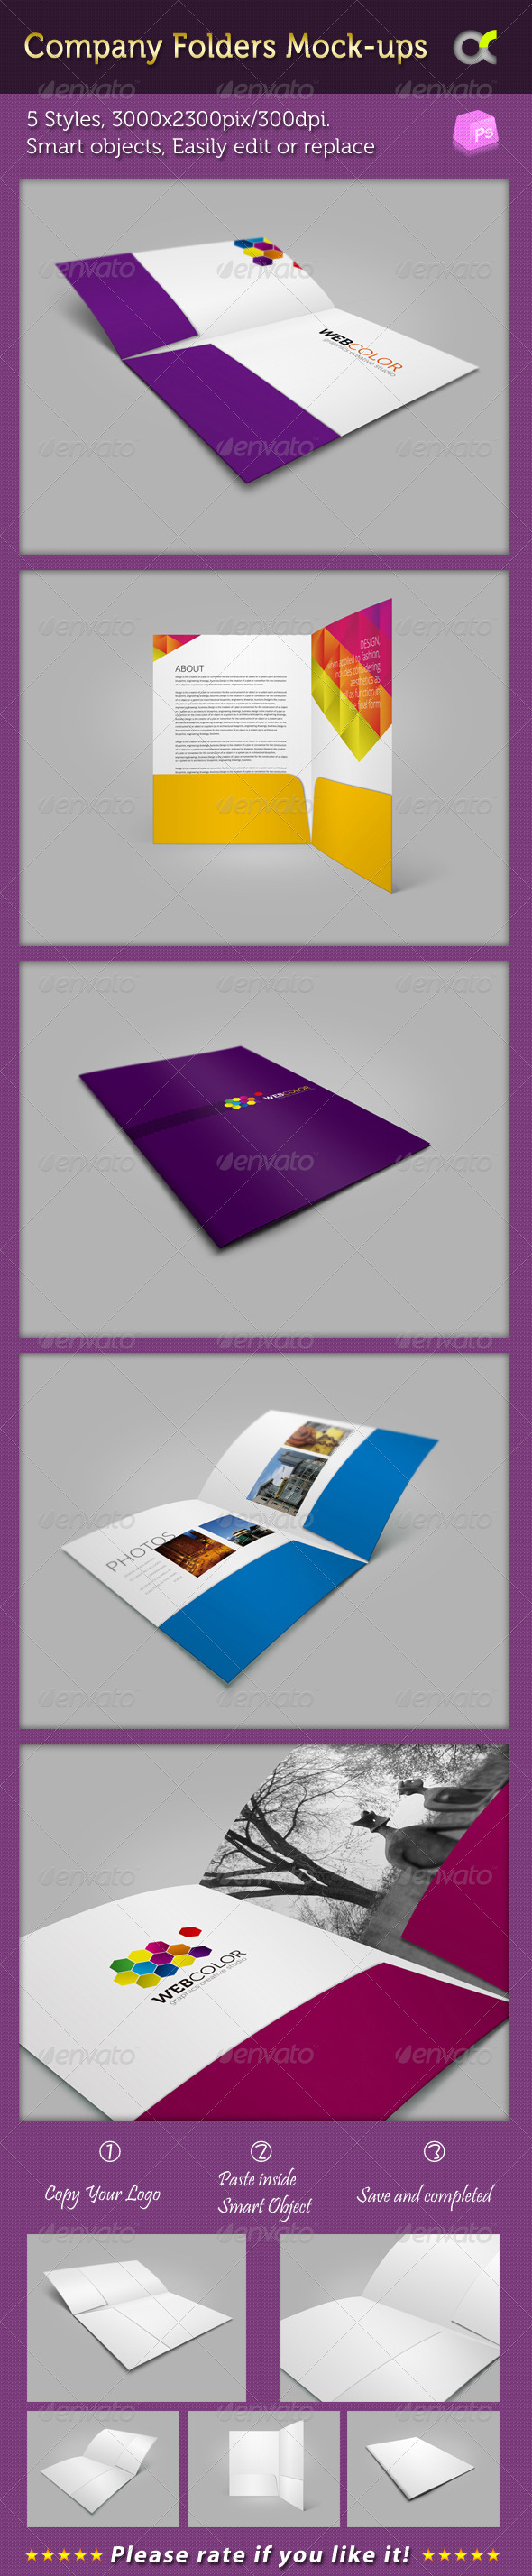 Company Folders Mock-ups - Product Mock-Ups Graphics